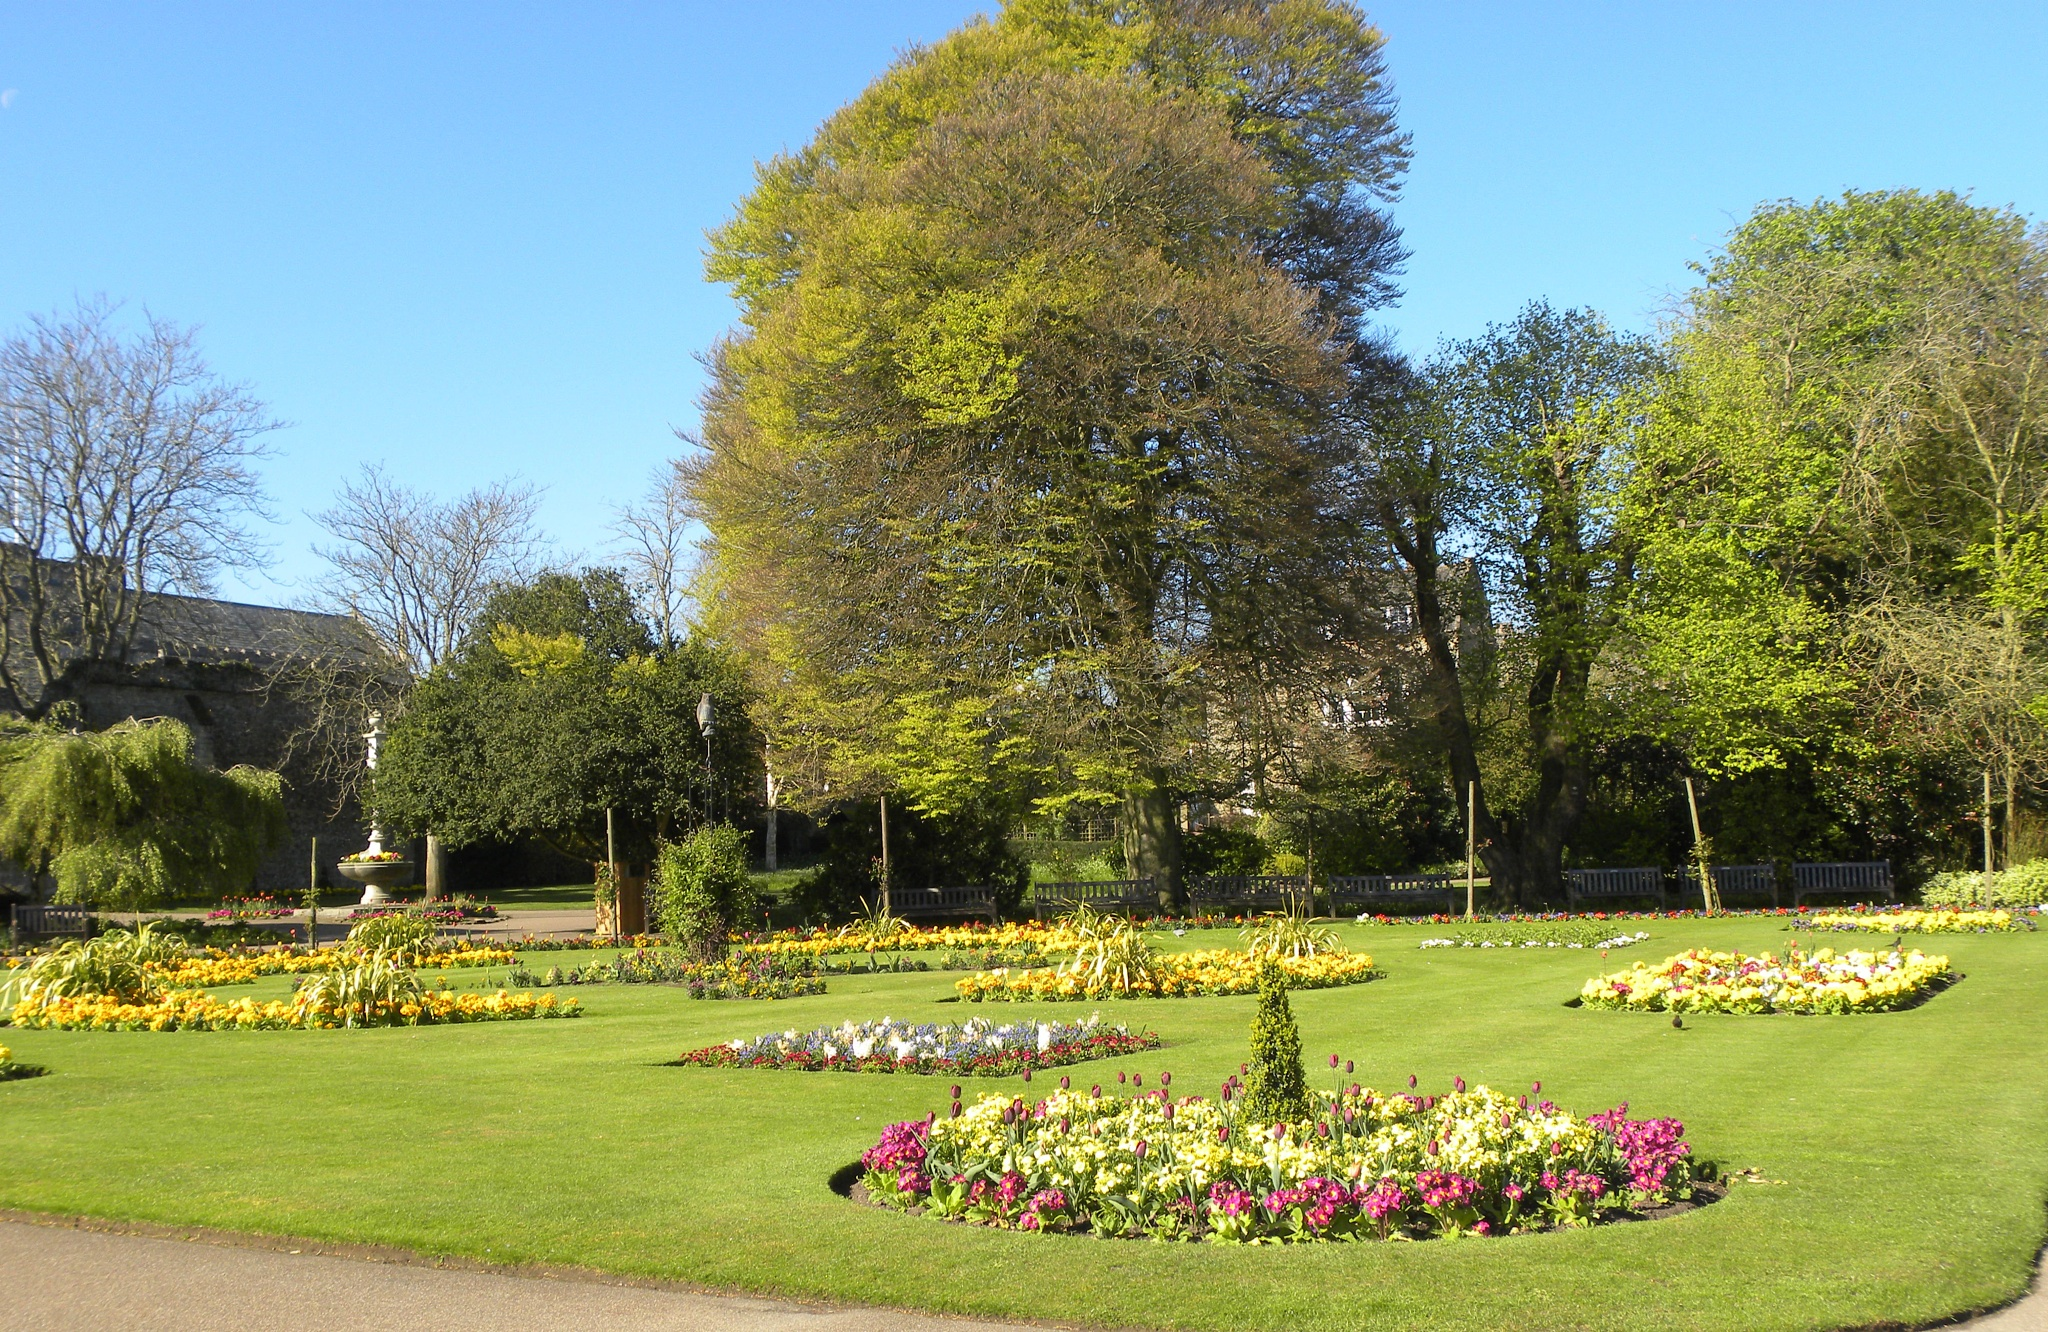 Photo in Landscape #flowers #plants #trees #park #abbey #suffolk #public #garden #gardening